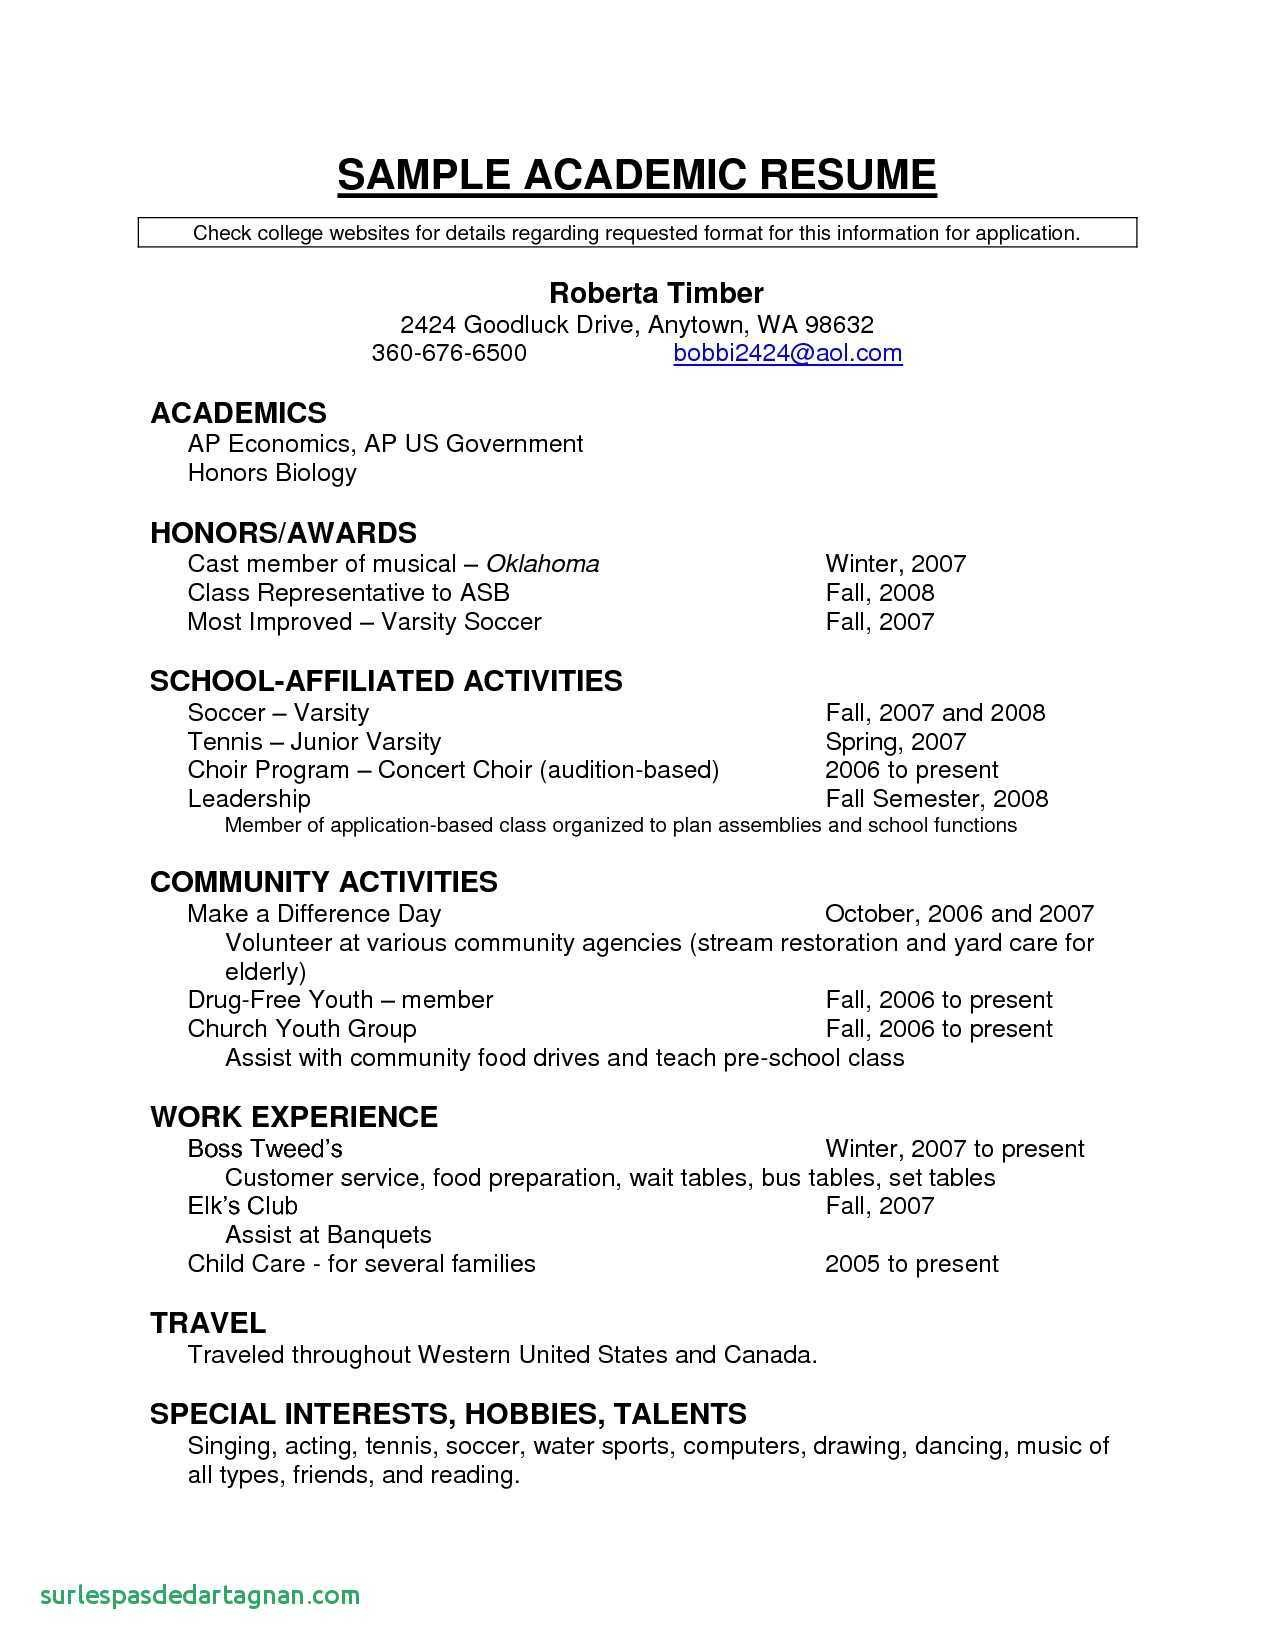 Writing A Good Resume - Good Resume Examples New Unique Resume for Highschool Students